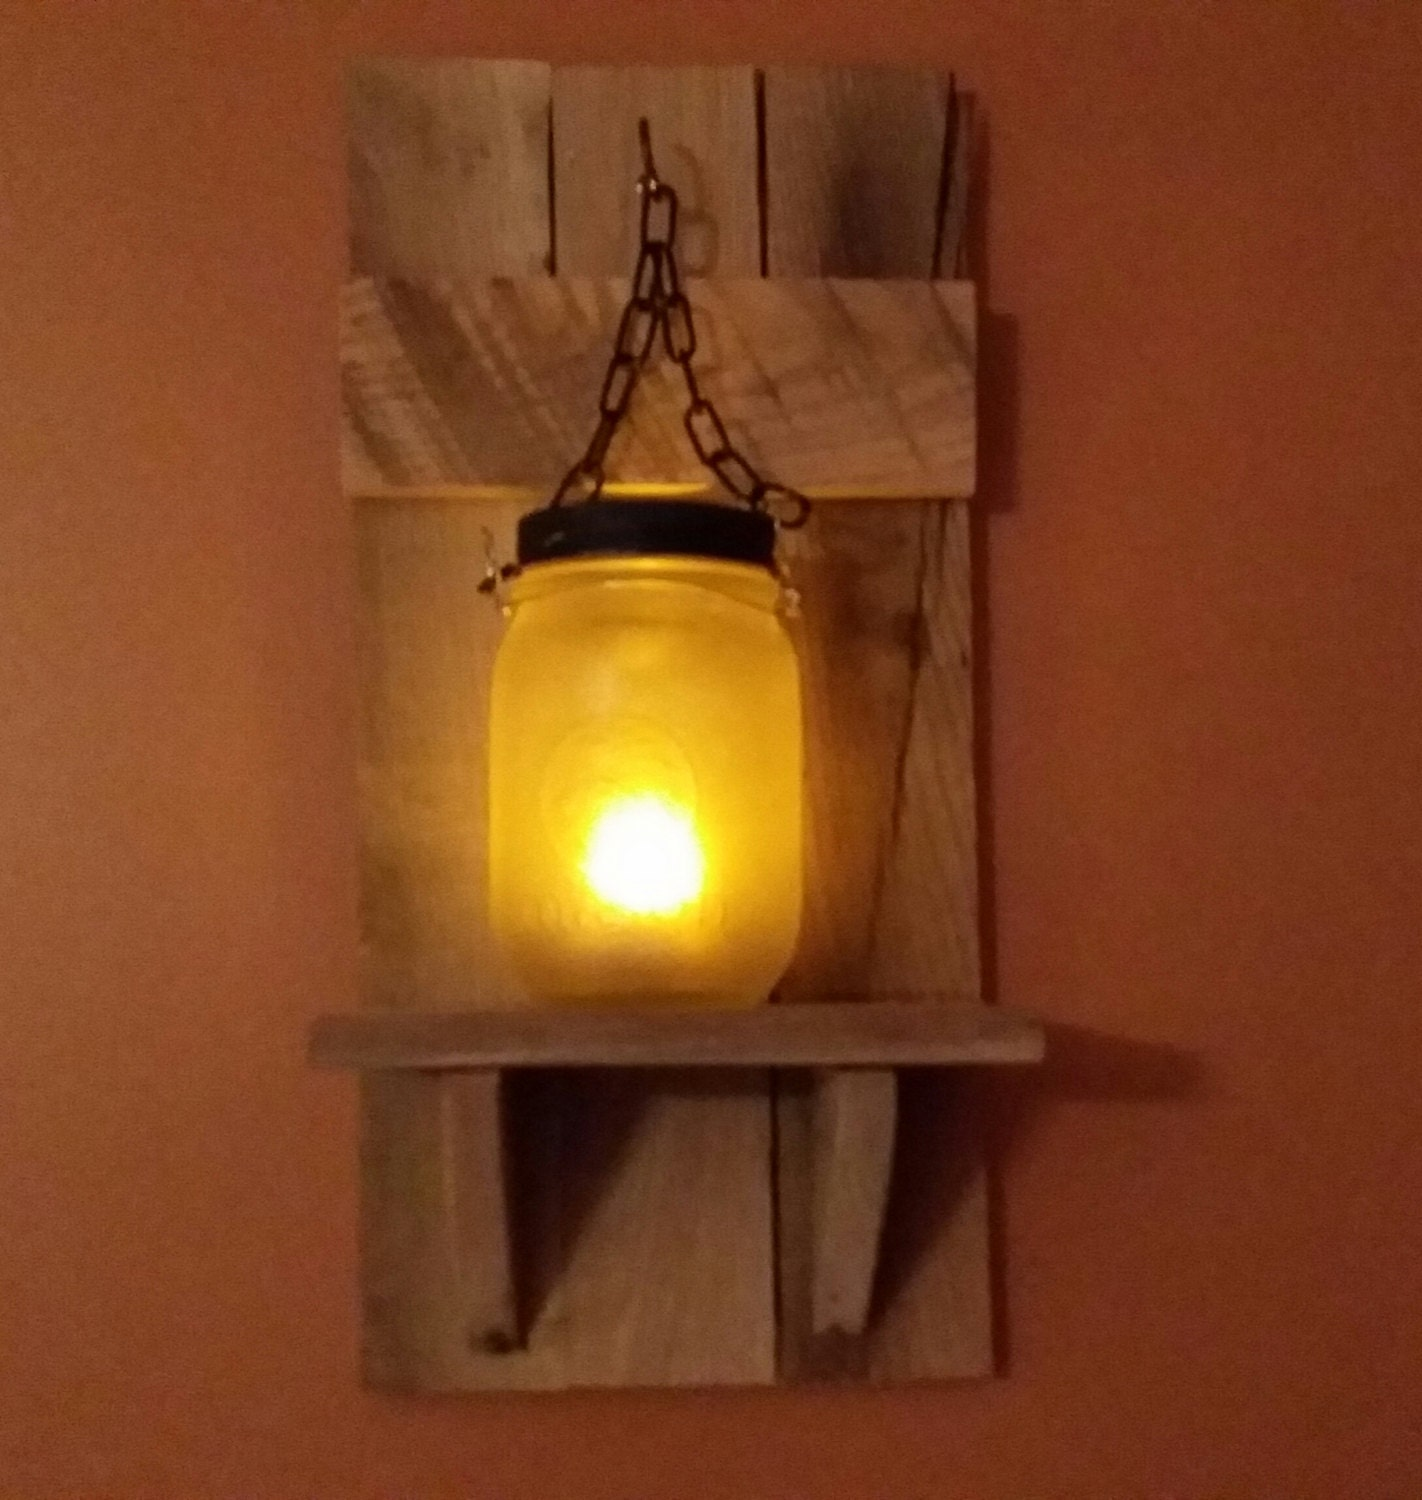 Country Wall Sconce Candle Holder : Rustic Candle Holder mason jar Country Decor sconce candle